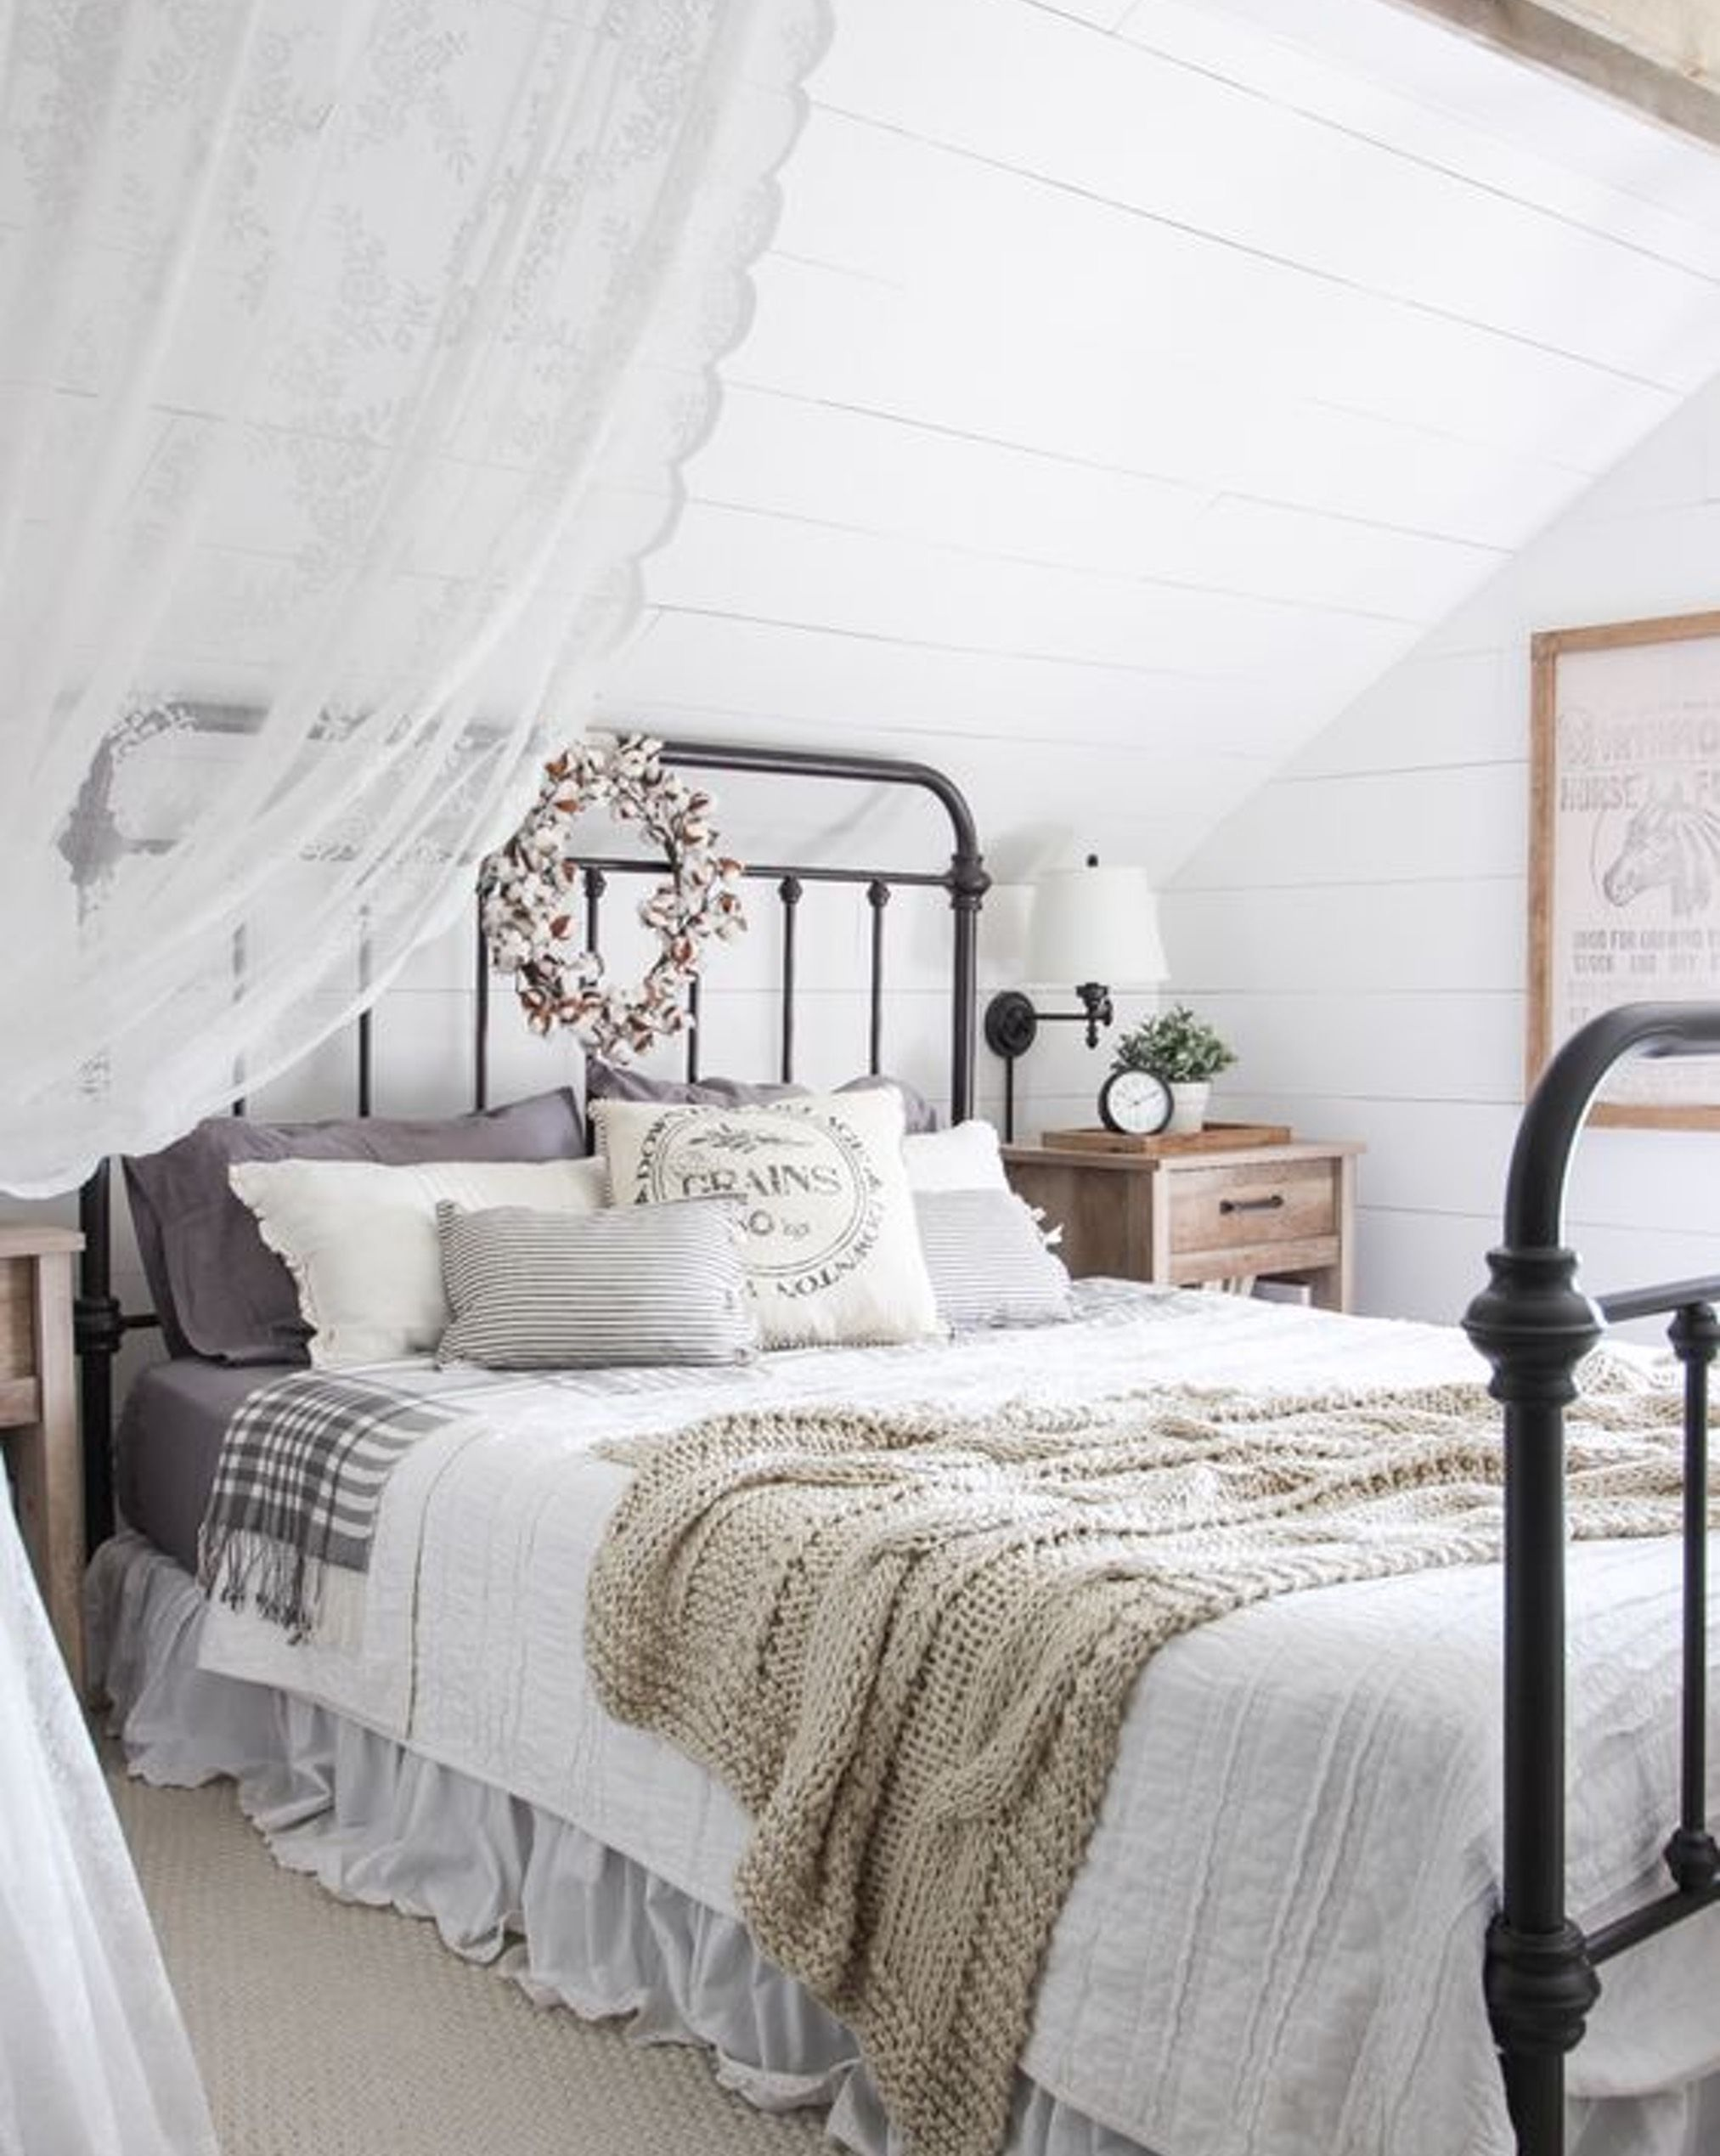 Best Interior Design Style Quiz What's Your Decorating Style This Month